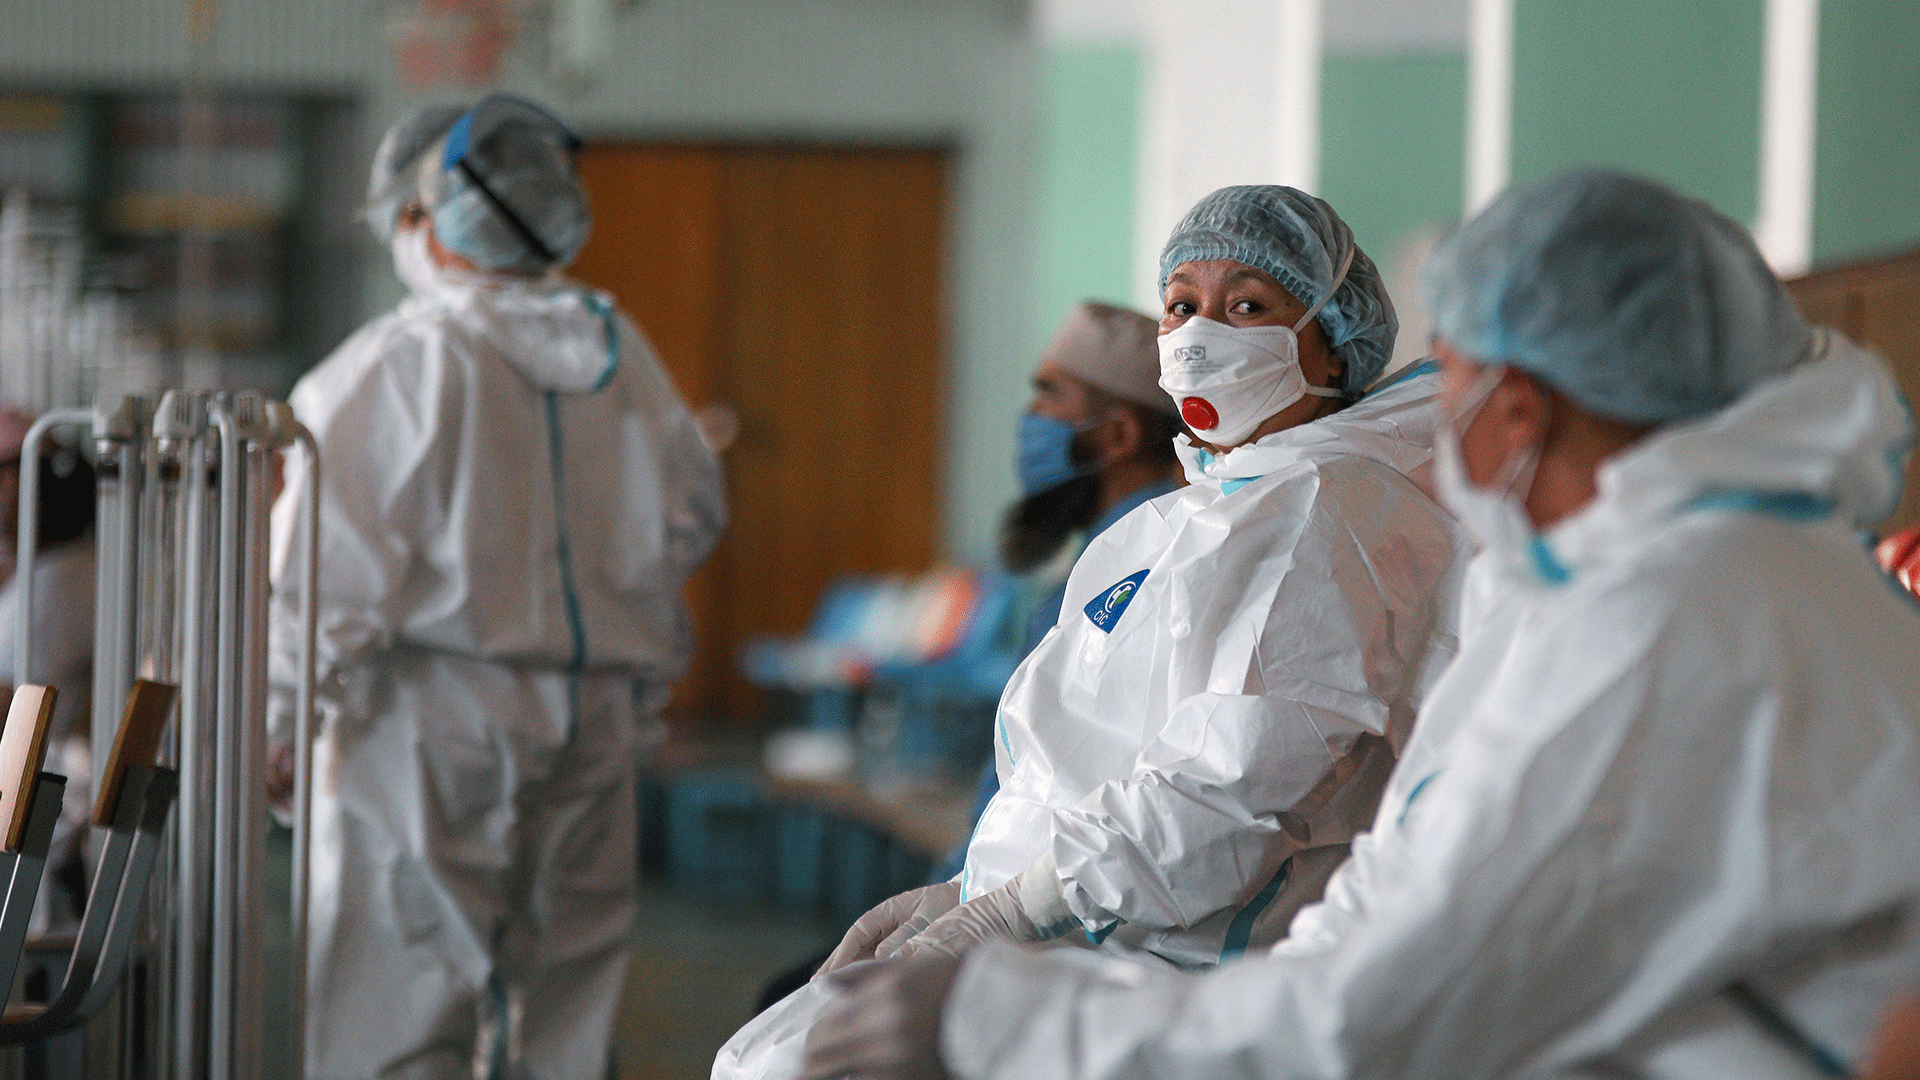 Confronting a global pandemic